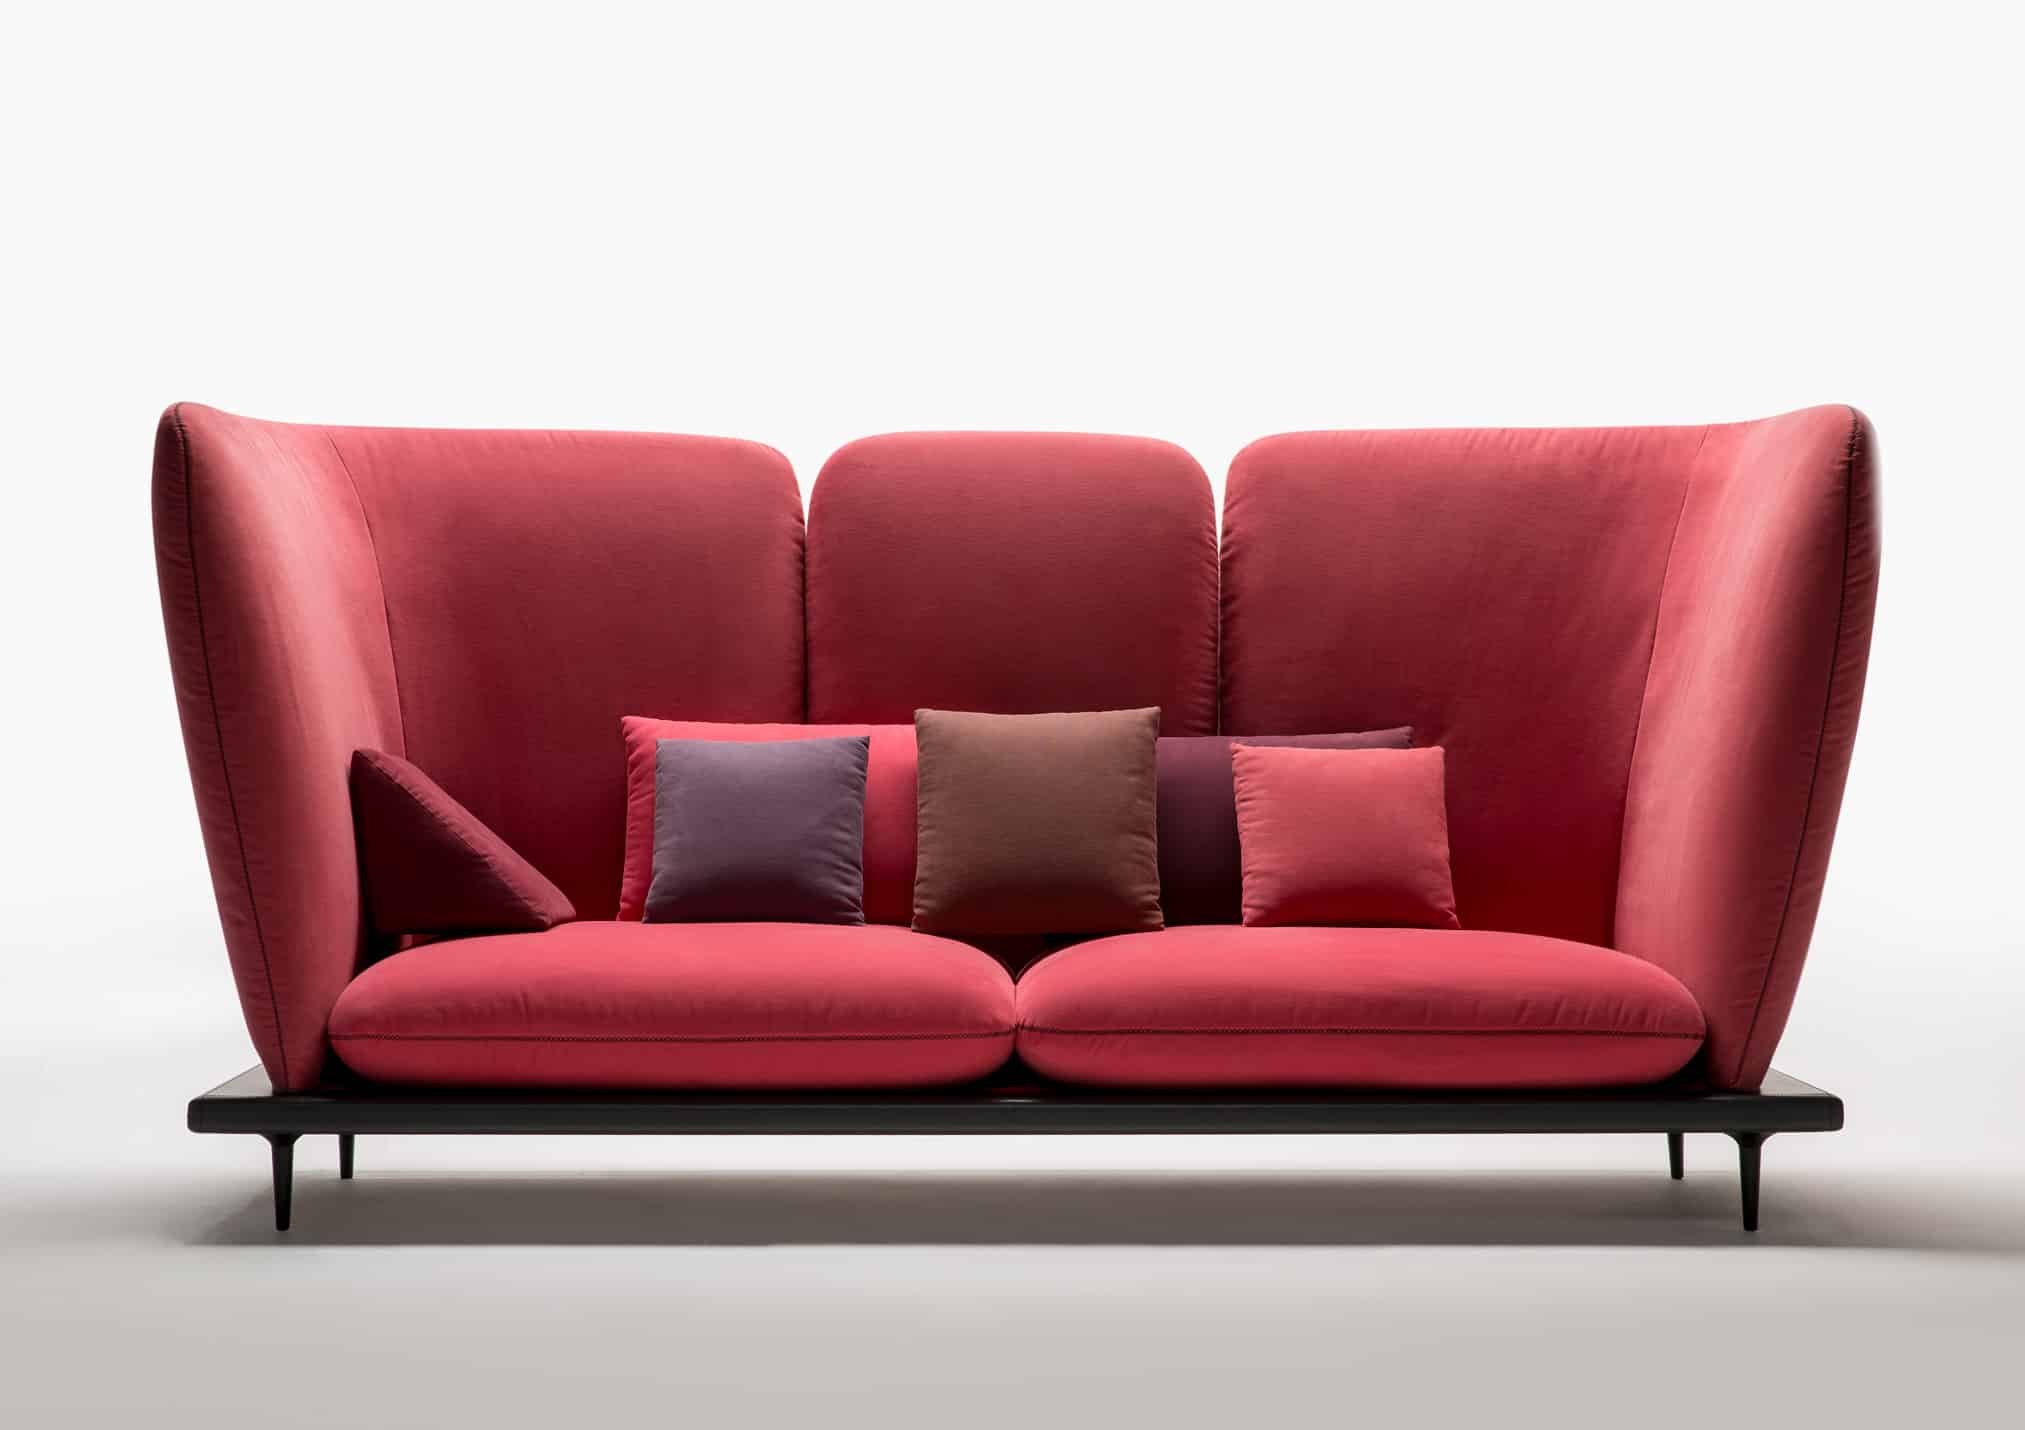 40 elegant modern sofas for cool living rooms Designer sofa gebraucht